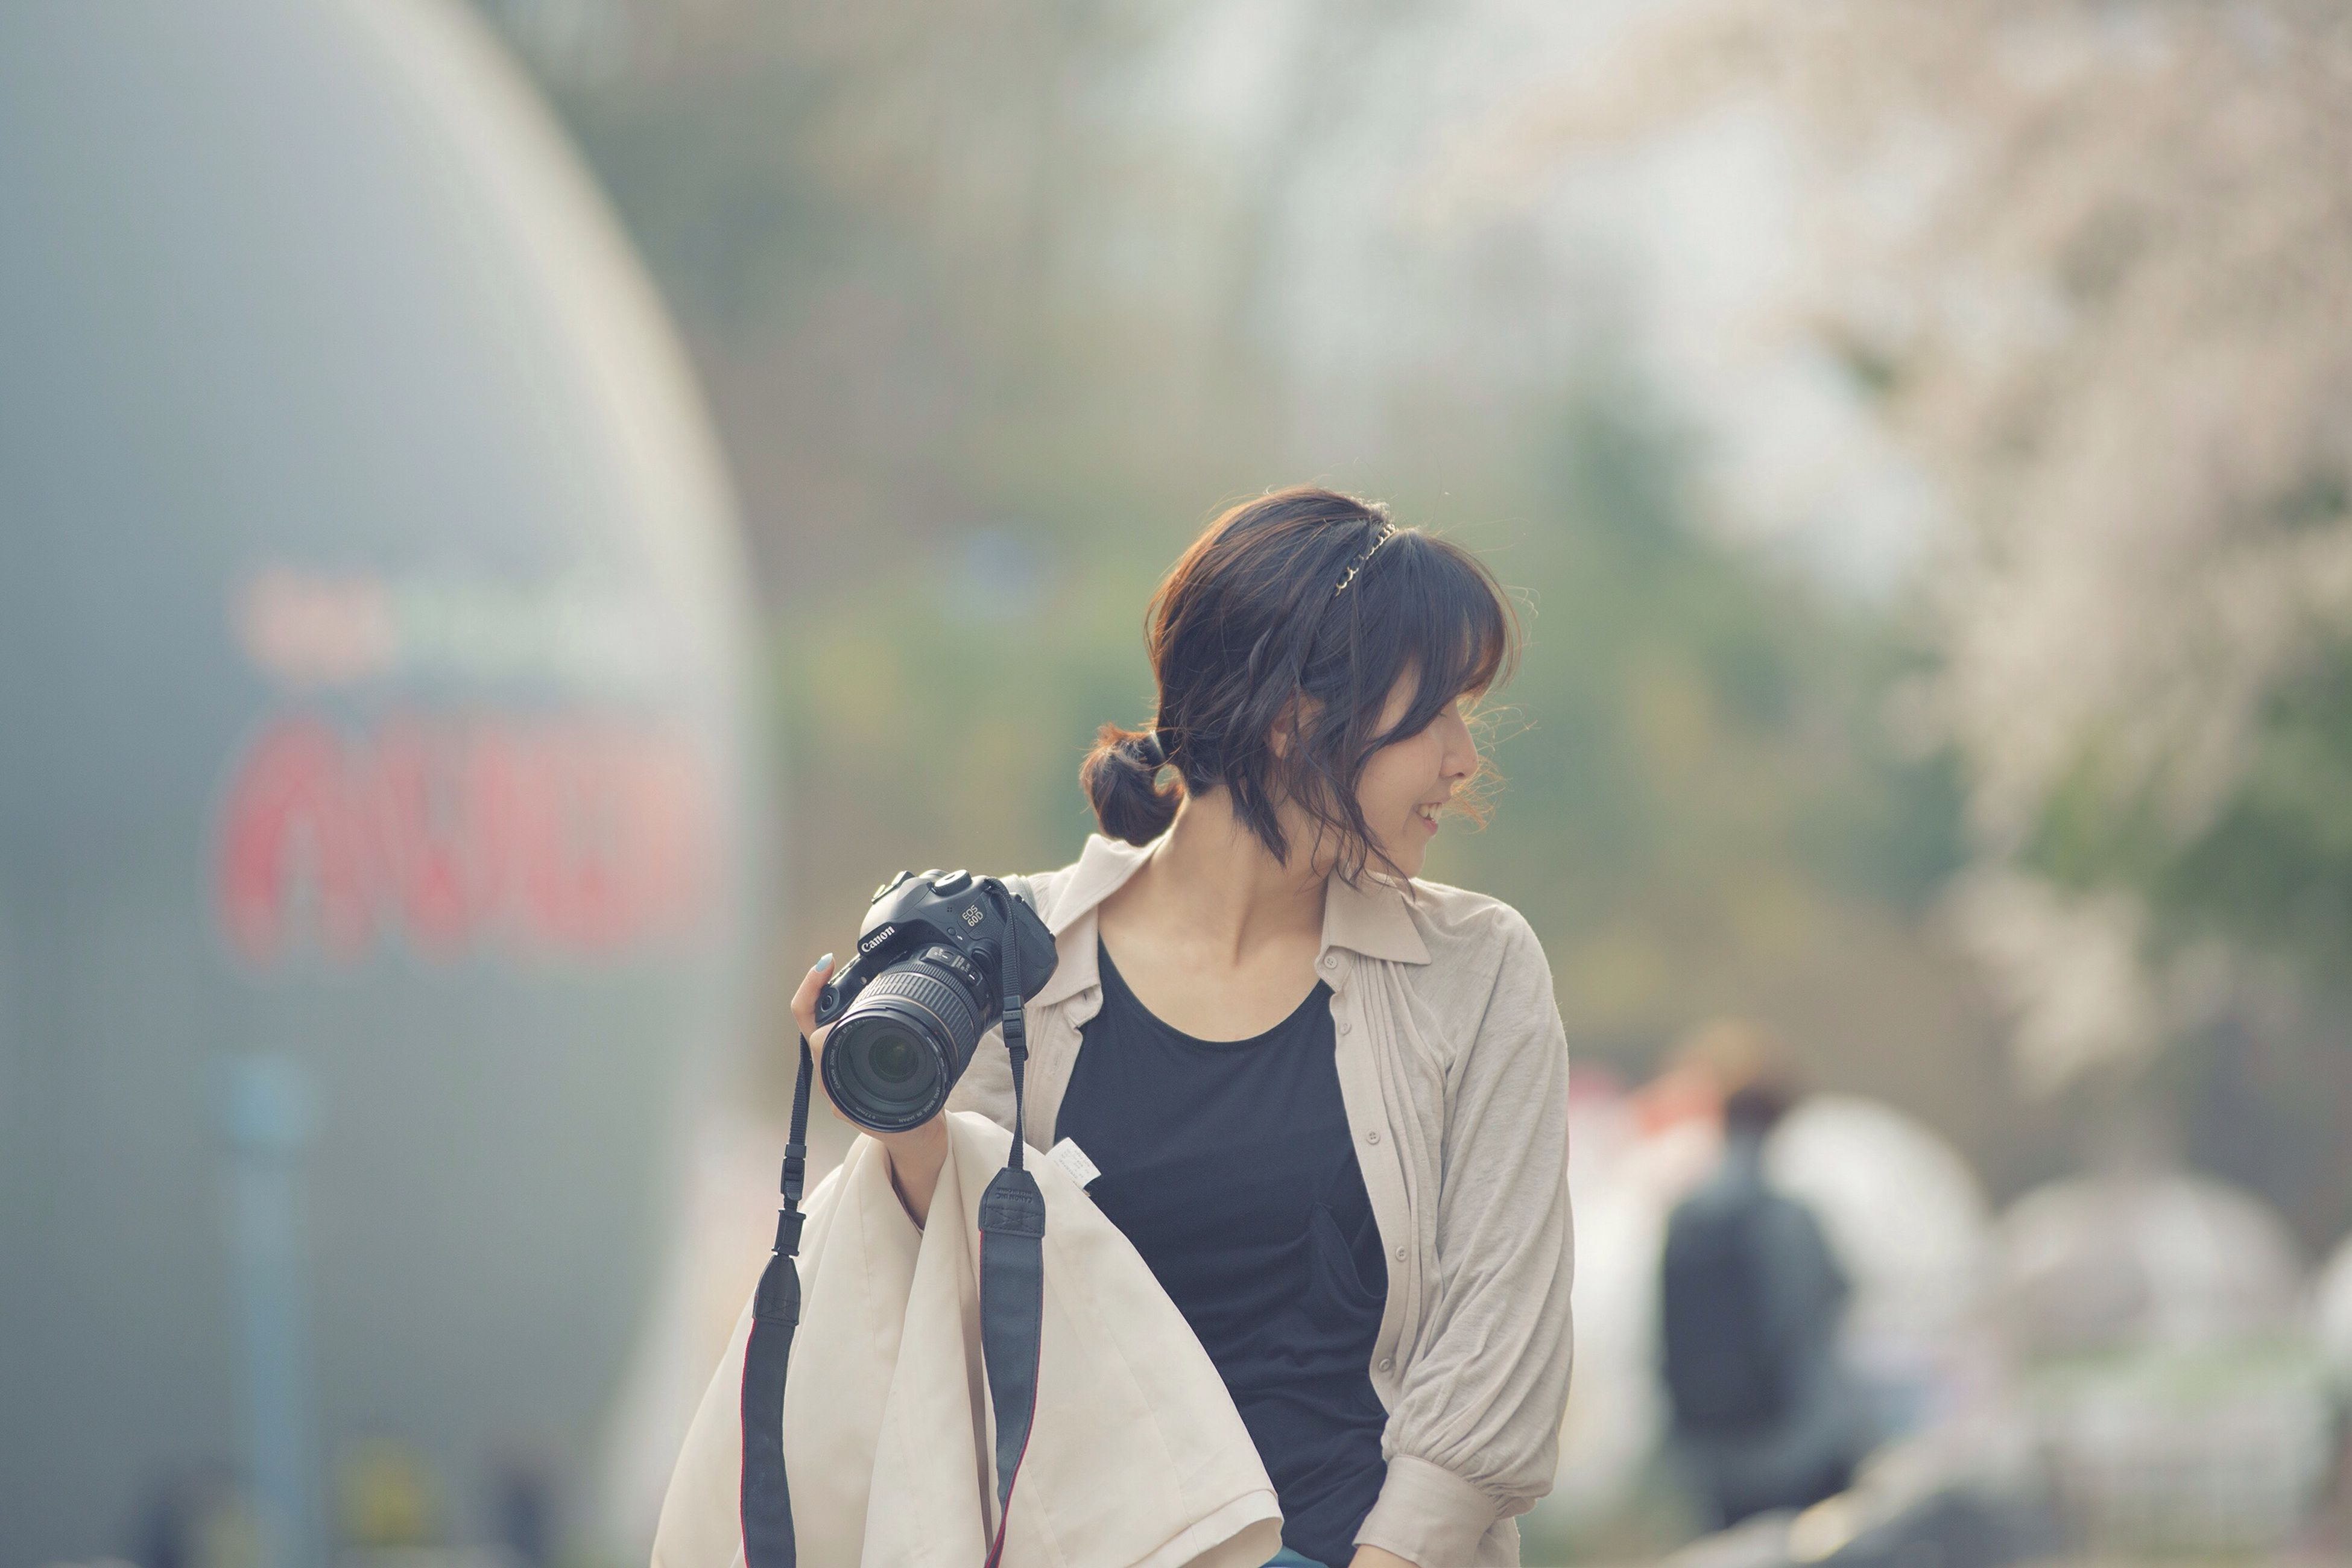 lifestyles, focus on foreground, rear view, leisure activity, casual clothing, waist up, standing, three quarter length, holding, men, photography themes, photographing, person, camera - photographic equipment, headshot, day, outdoors